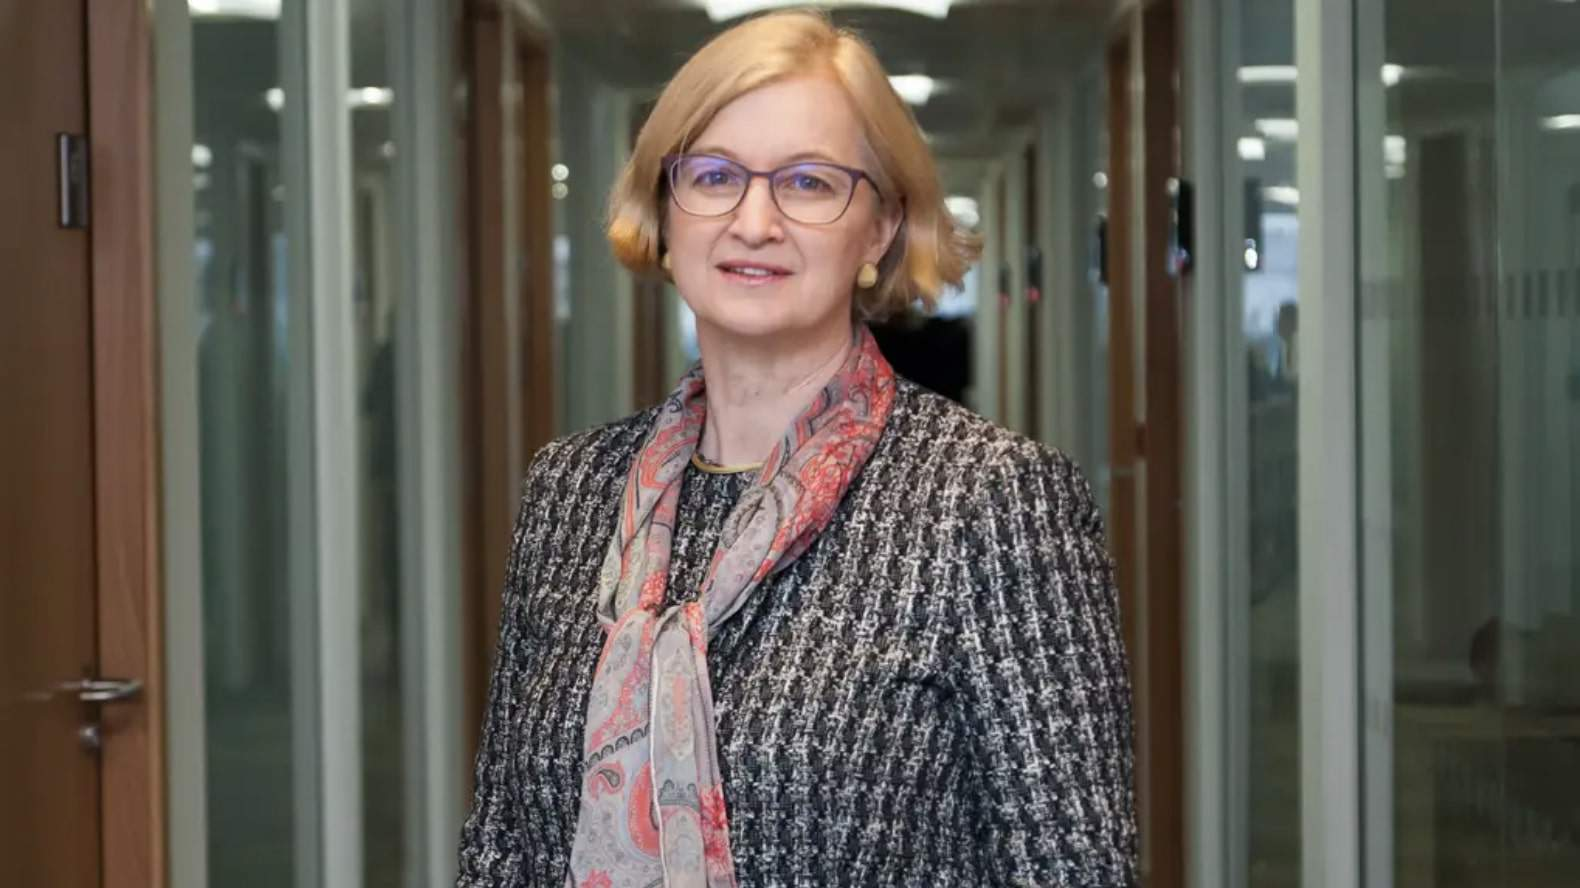 Ofsted's chief inspector, Amanda Spielman